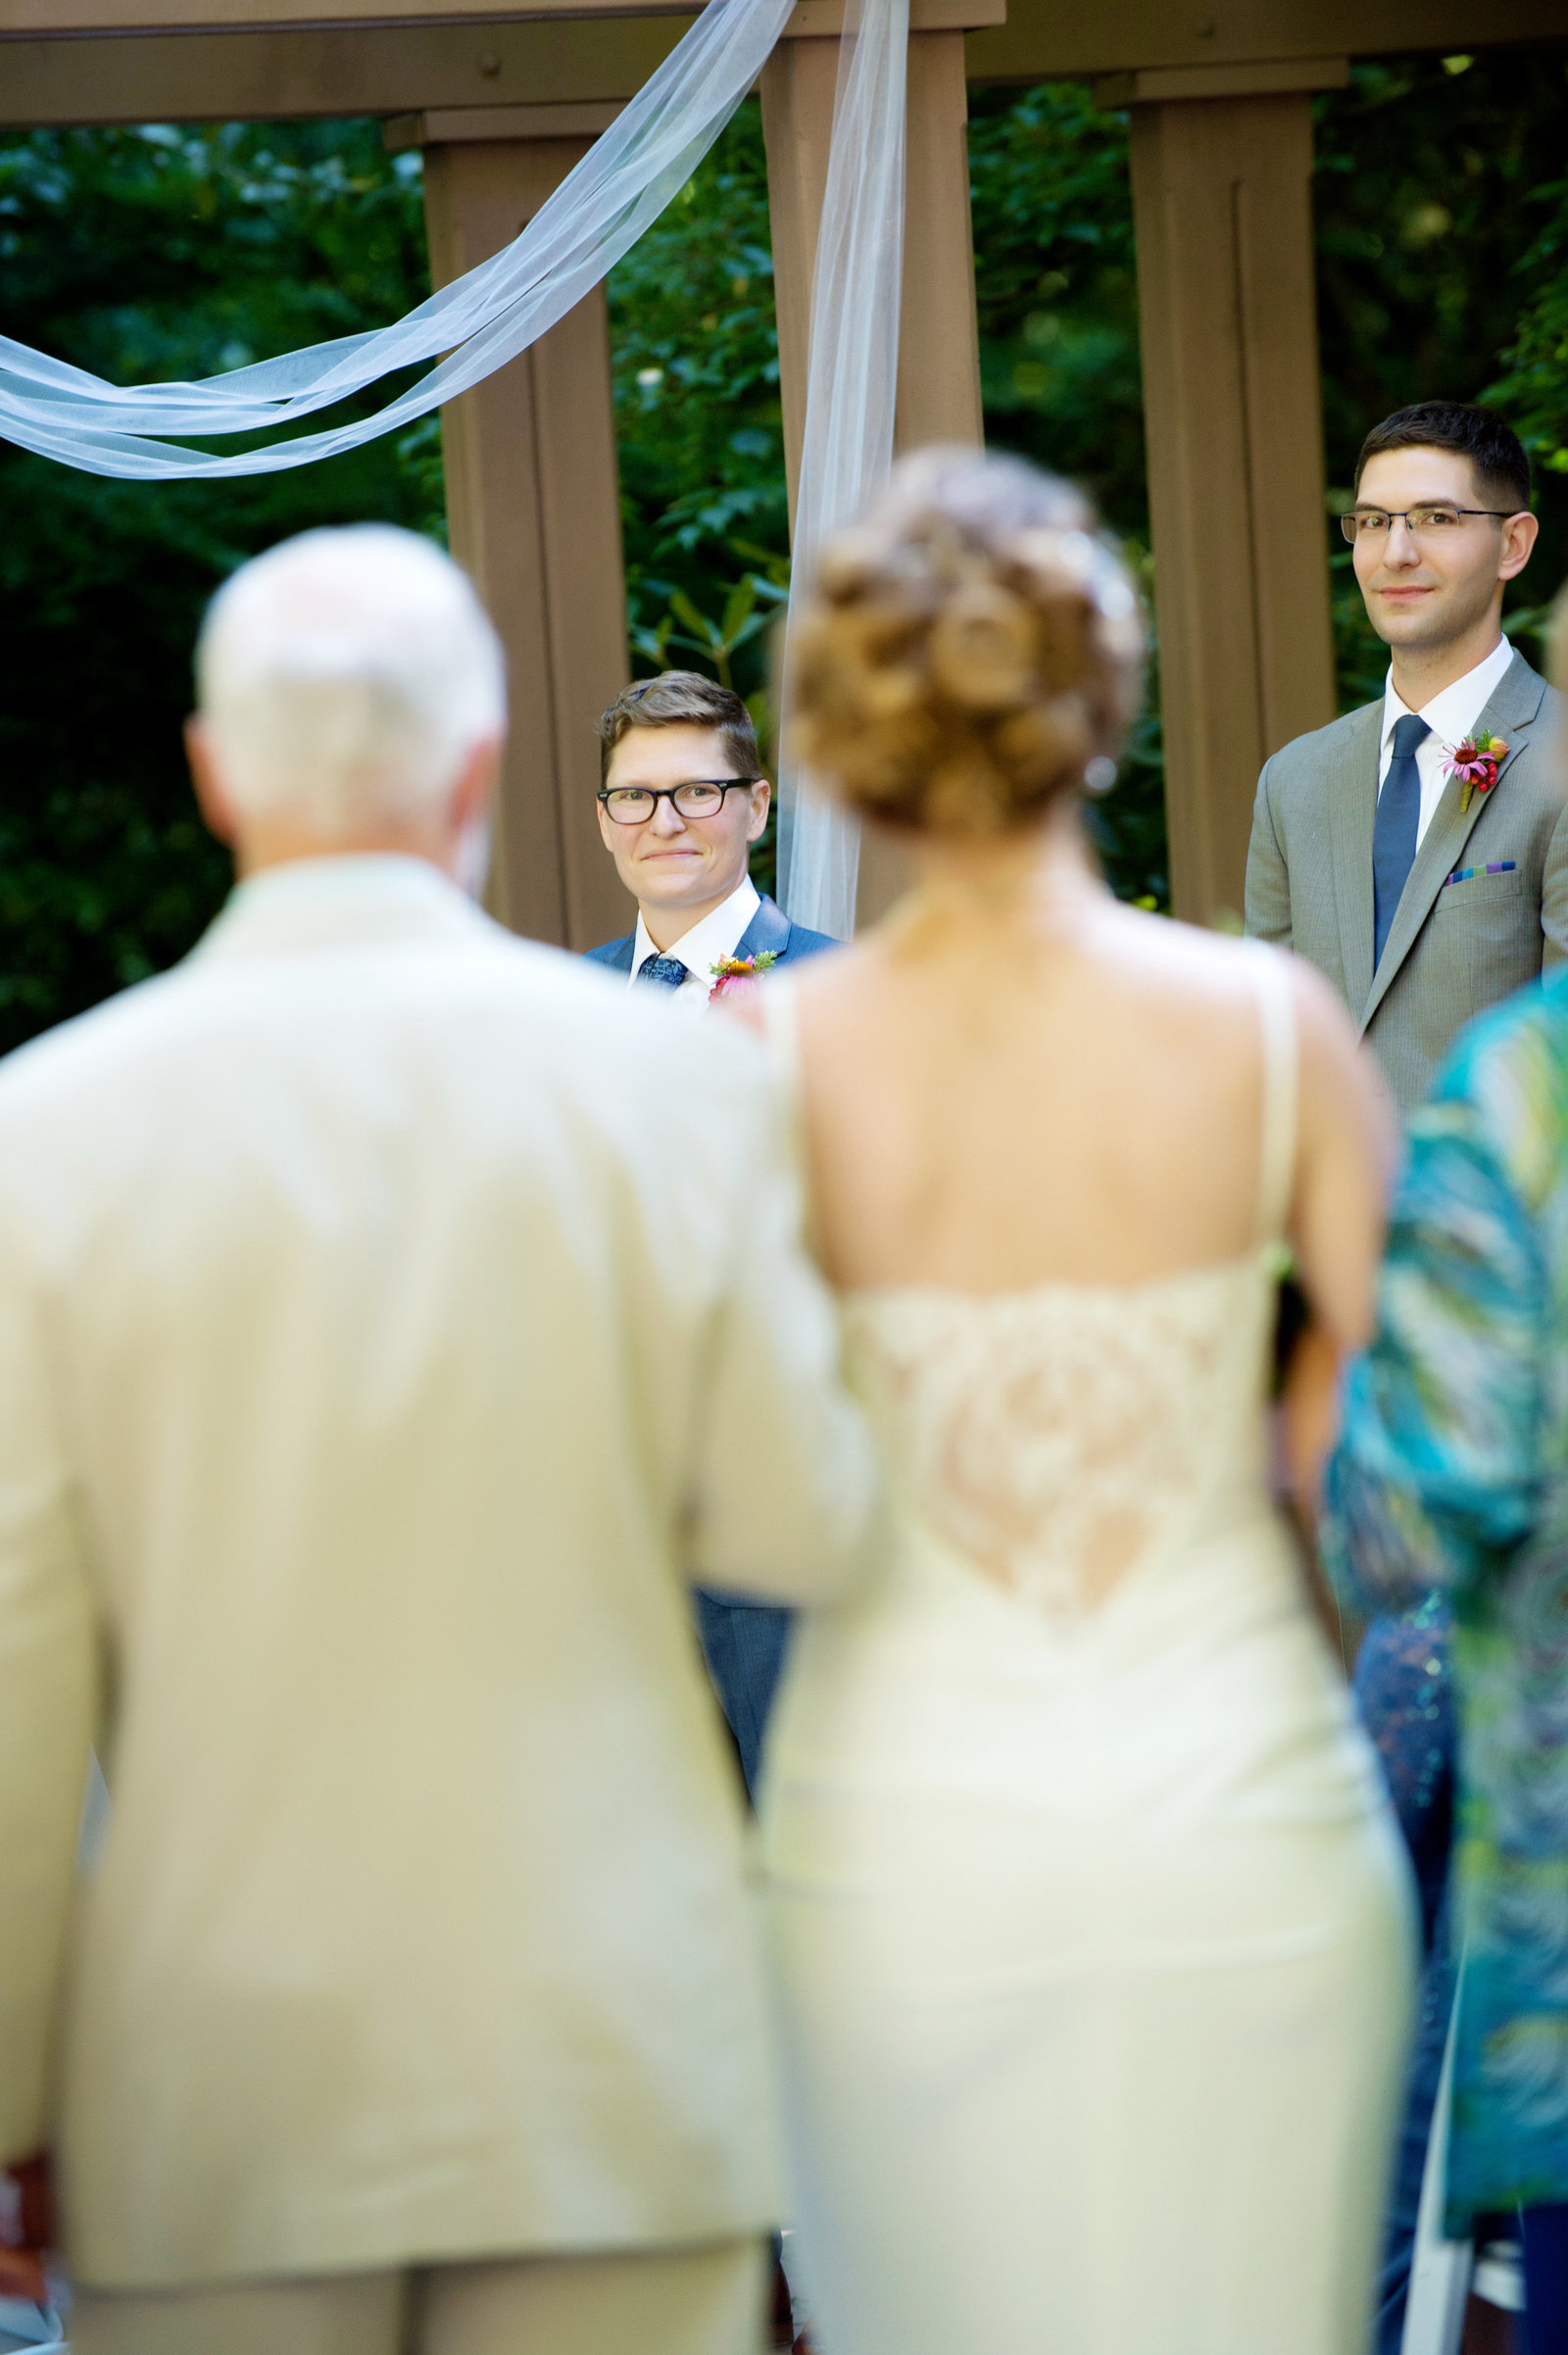 Crystal Genes Photography LEACH BOTANICAL GARDEN WEDDING_160806-170446